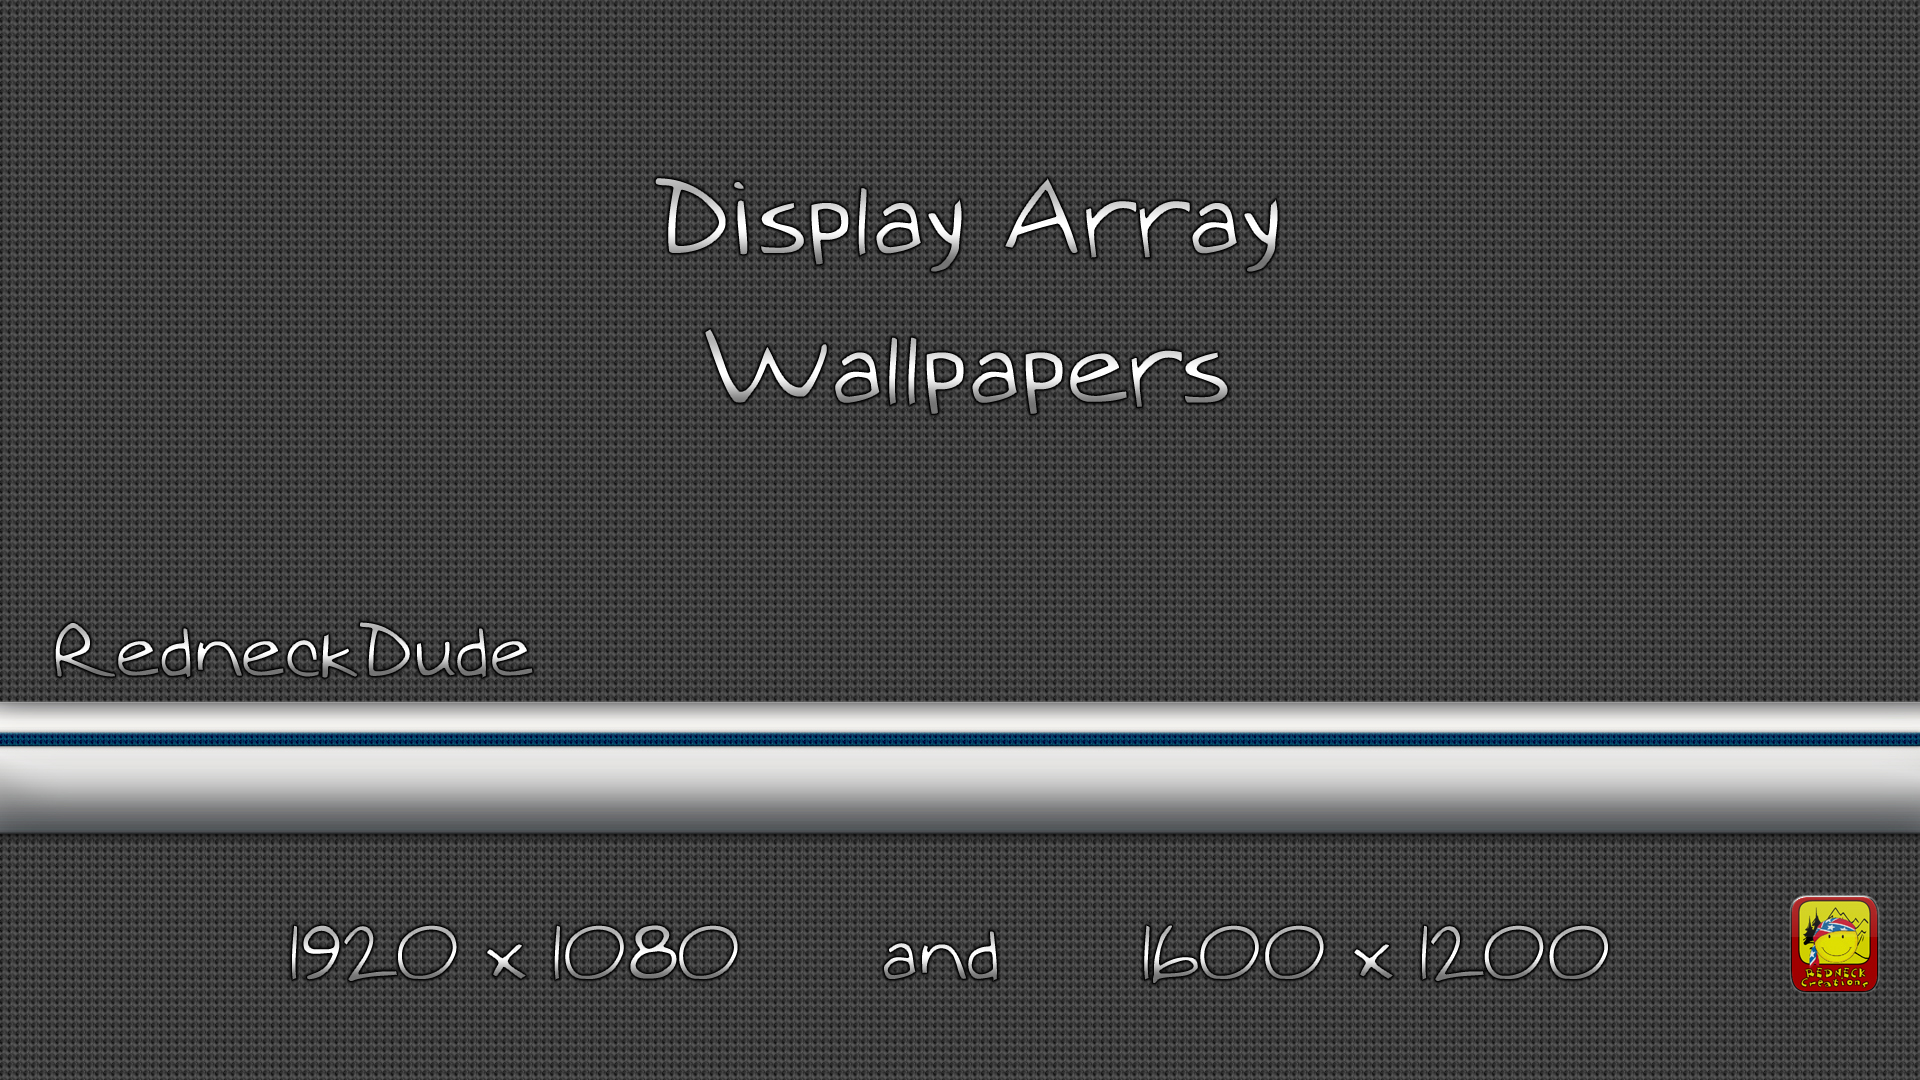 Display Array Walls